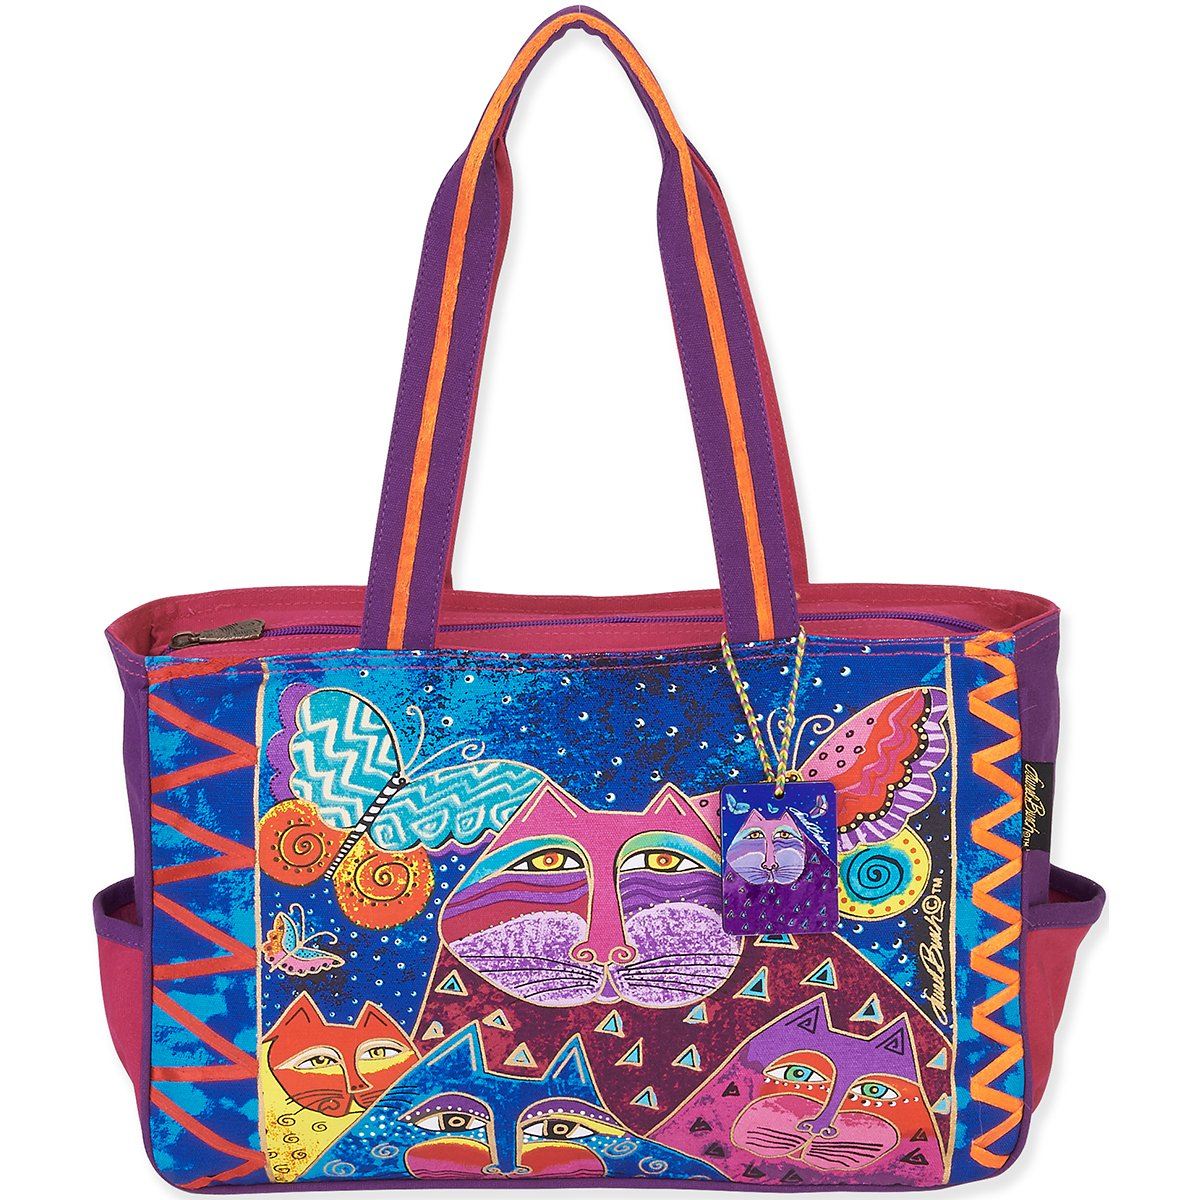 Laurel Burch Laurel Burch Medium Tote, 15 del 4 per 10 pollici, Gatti con farfalle LB5502